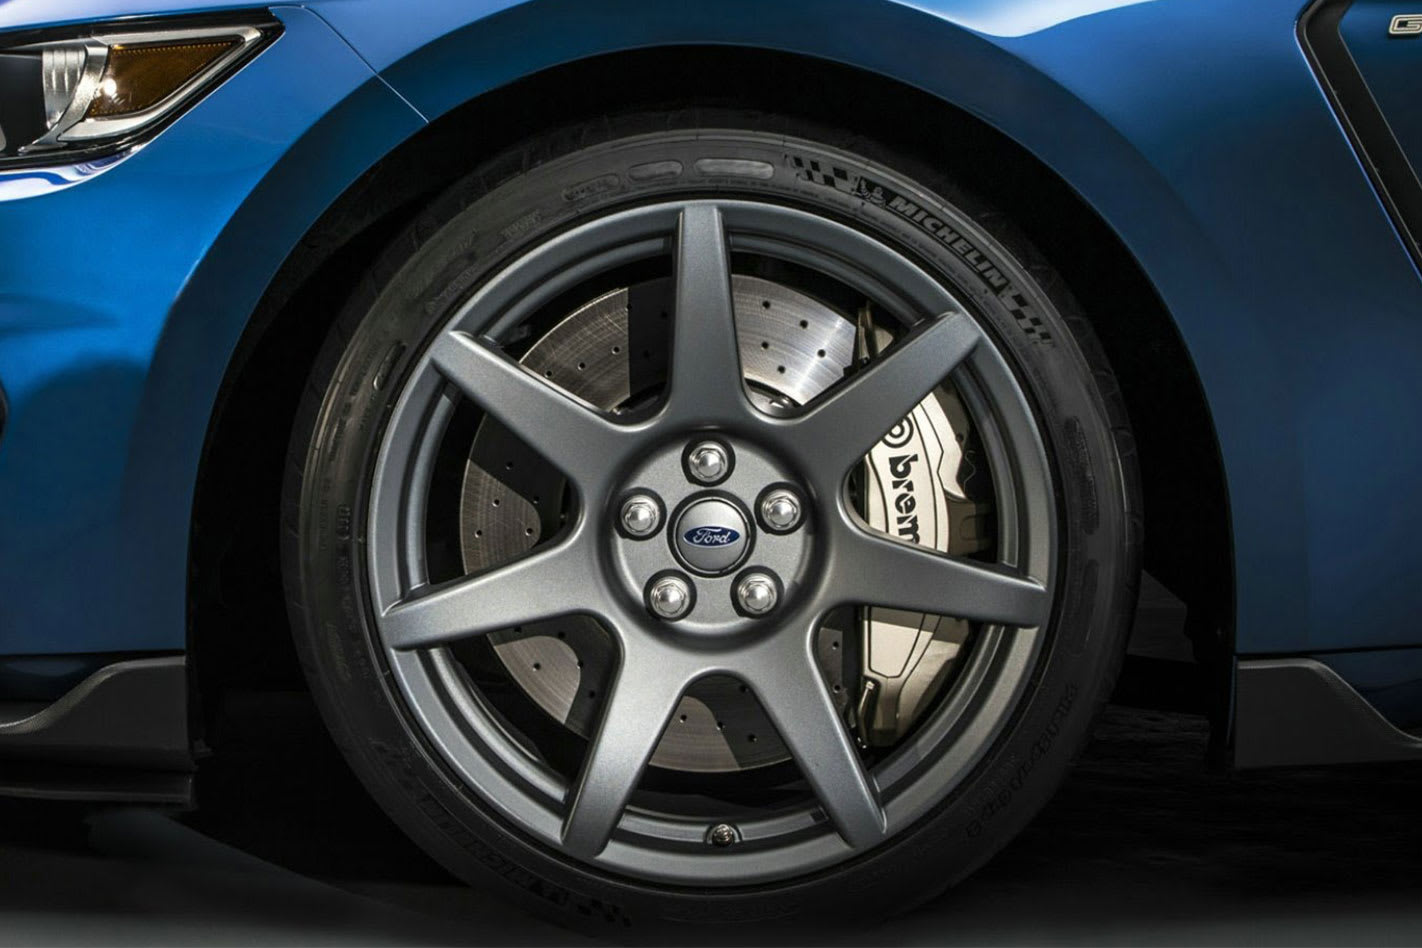 Ford Mustang carbon wheels